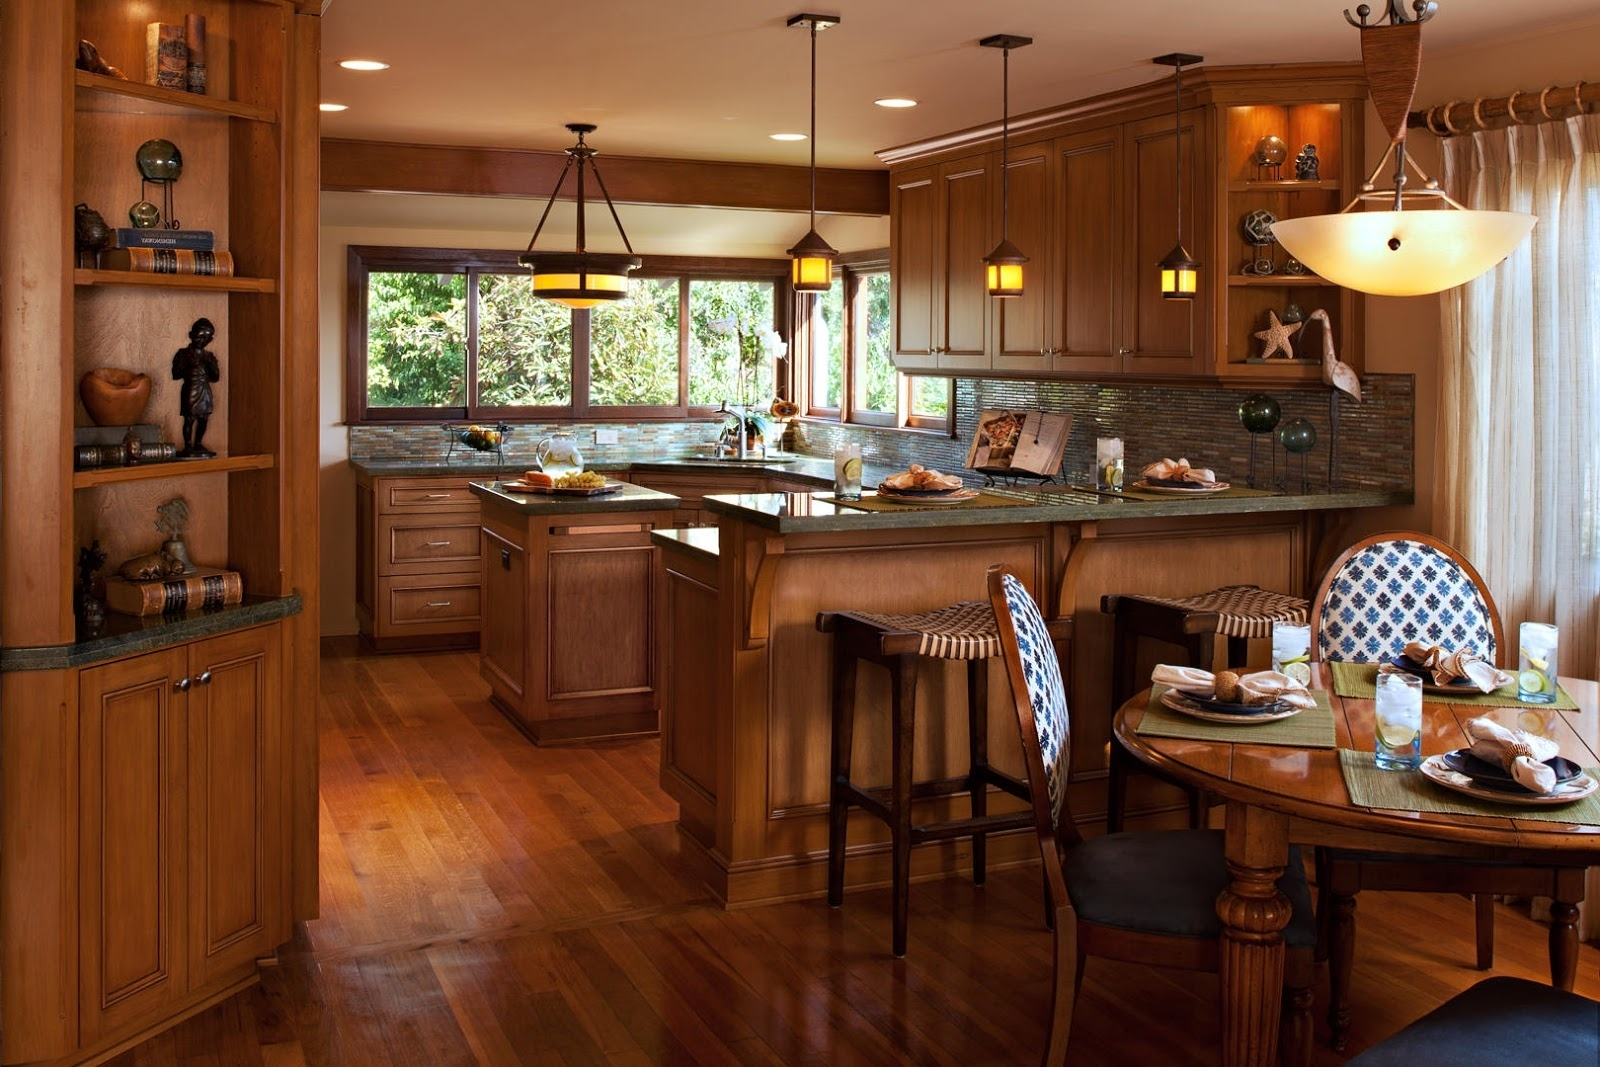 Popular Craftsman Round Dining Tables Within Home Priority: Astonishing Craftsman Style Interior Design Ideas For (View 13 of 25)